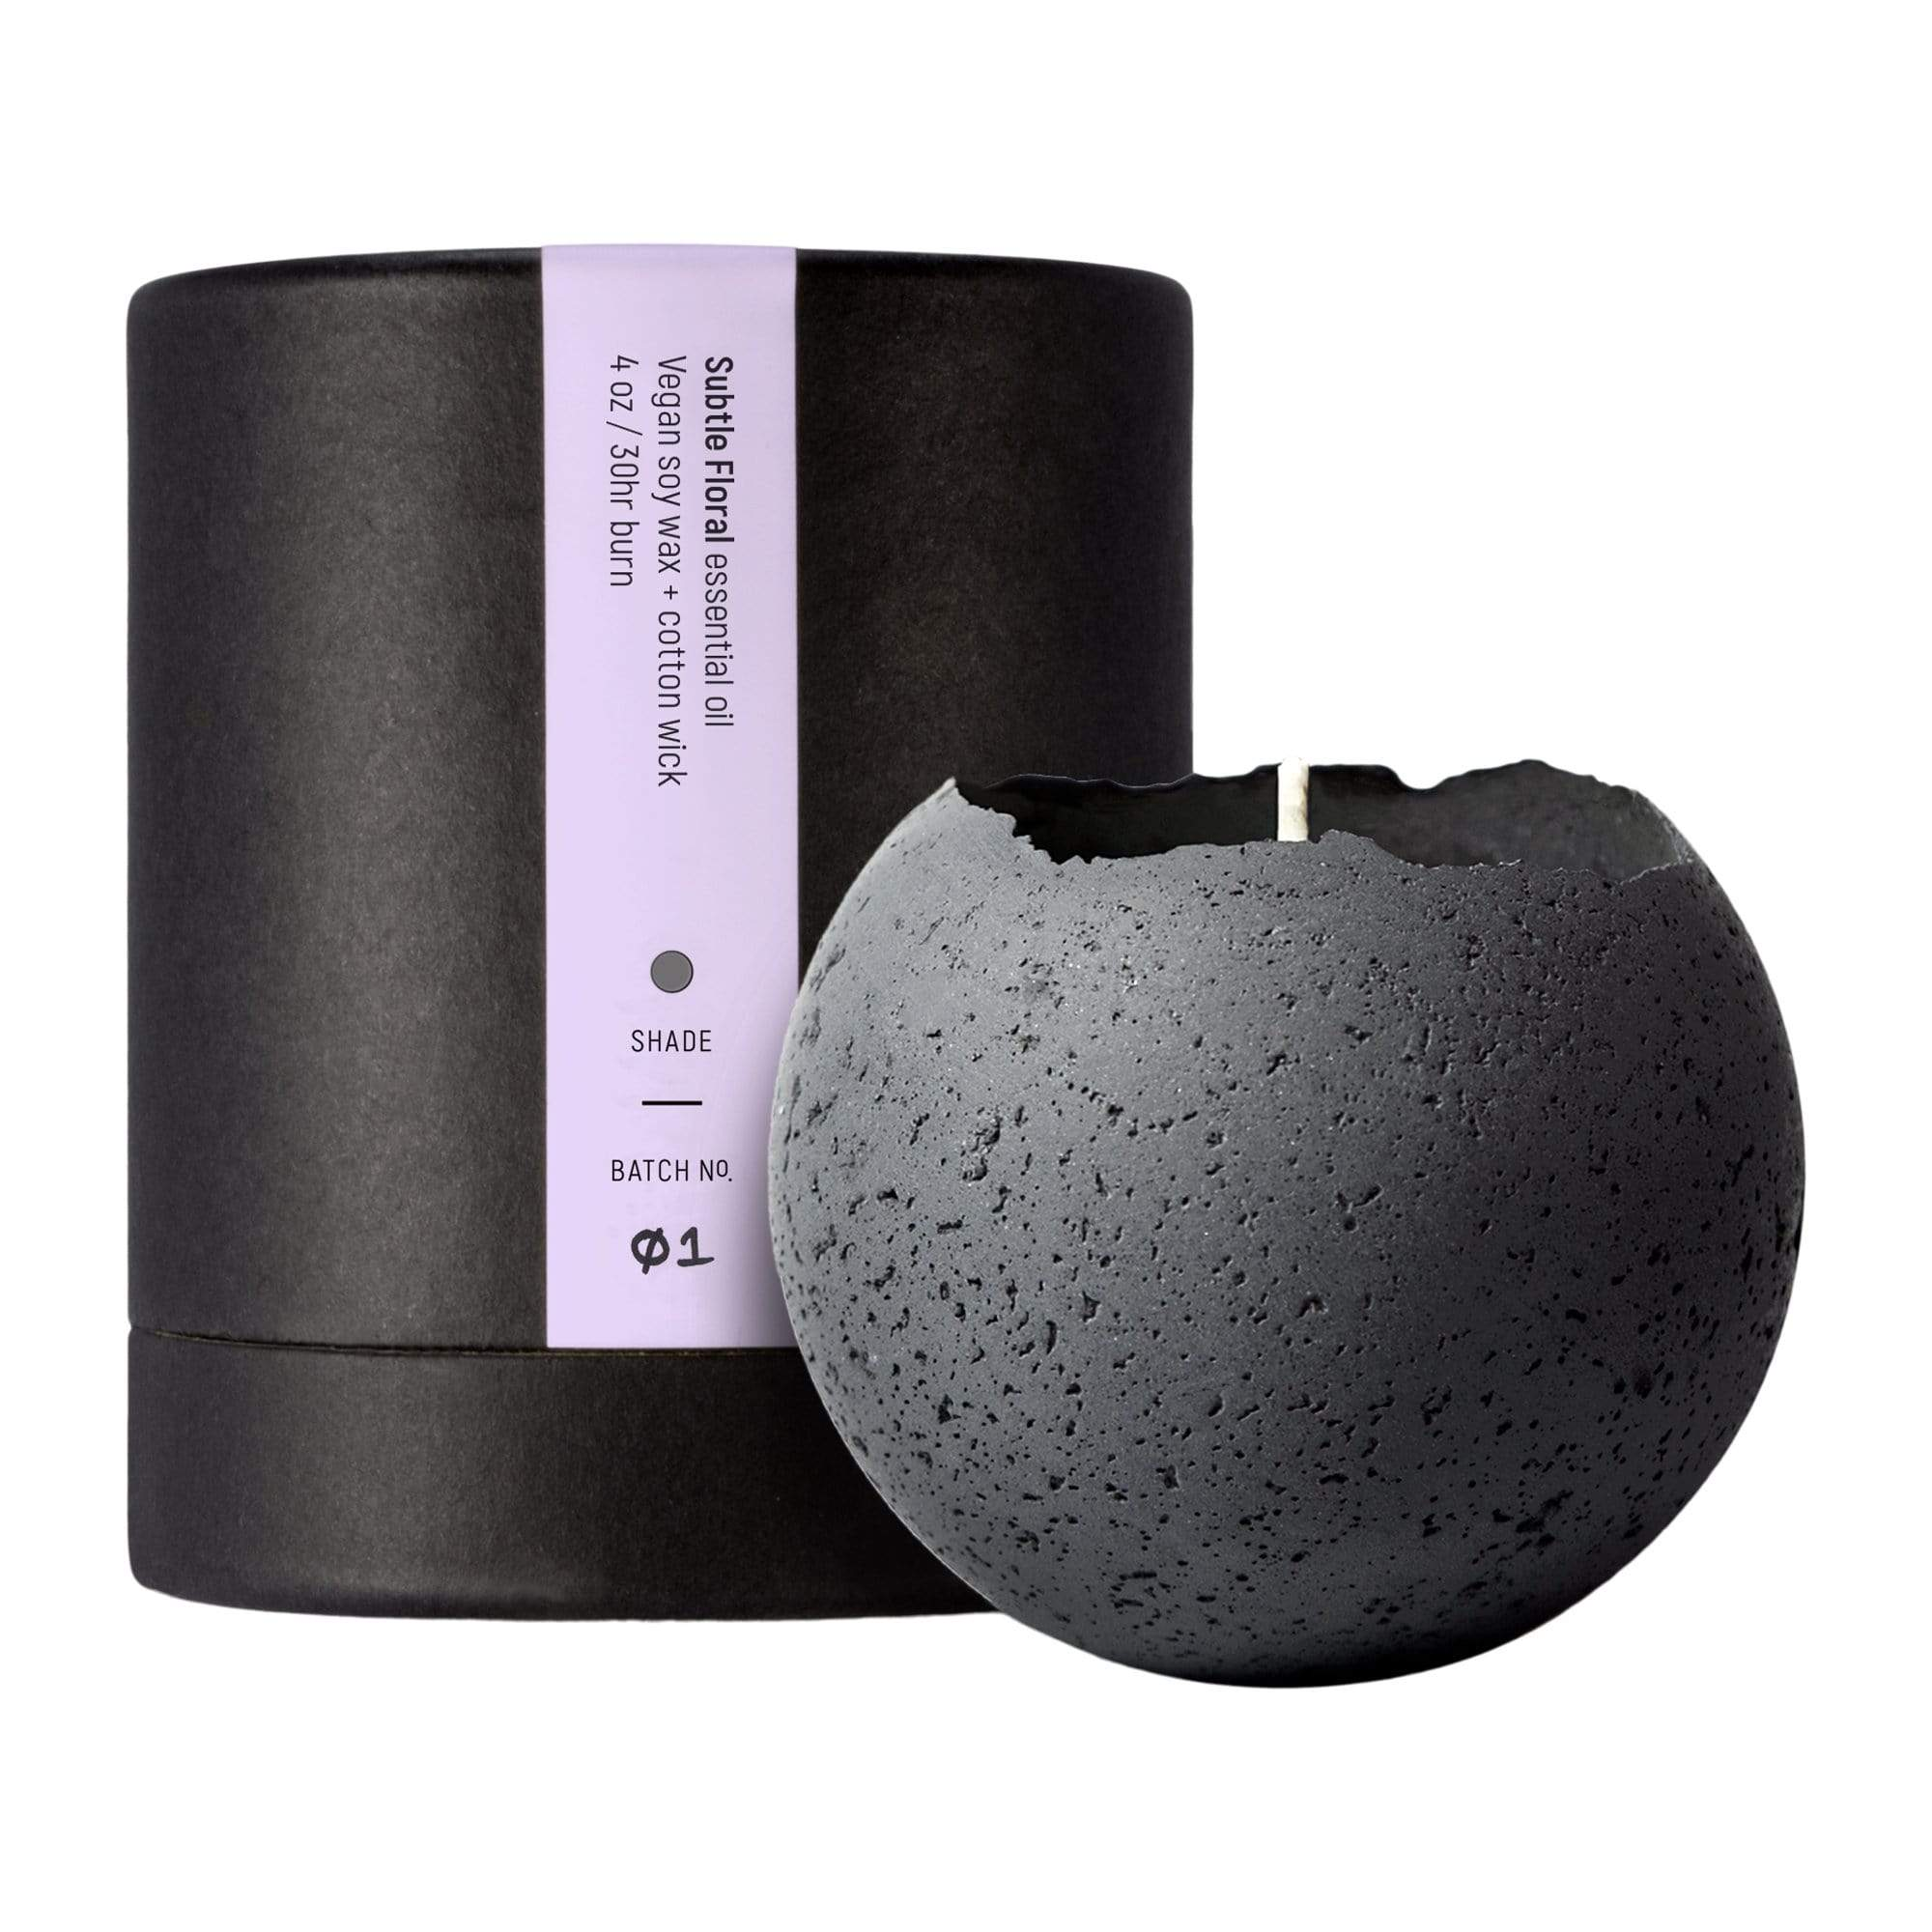 Large Orbis Concrete Candle in Charcoal